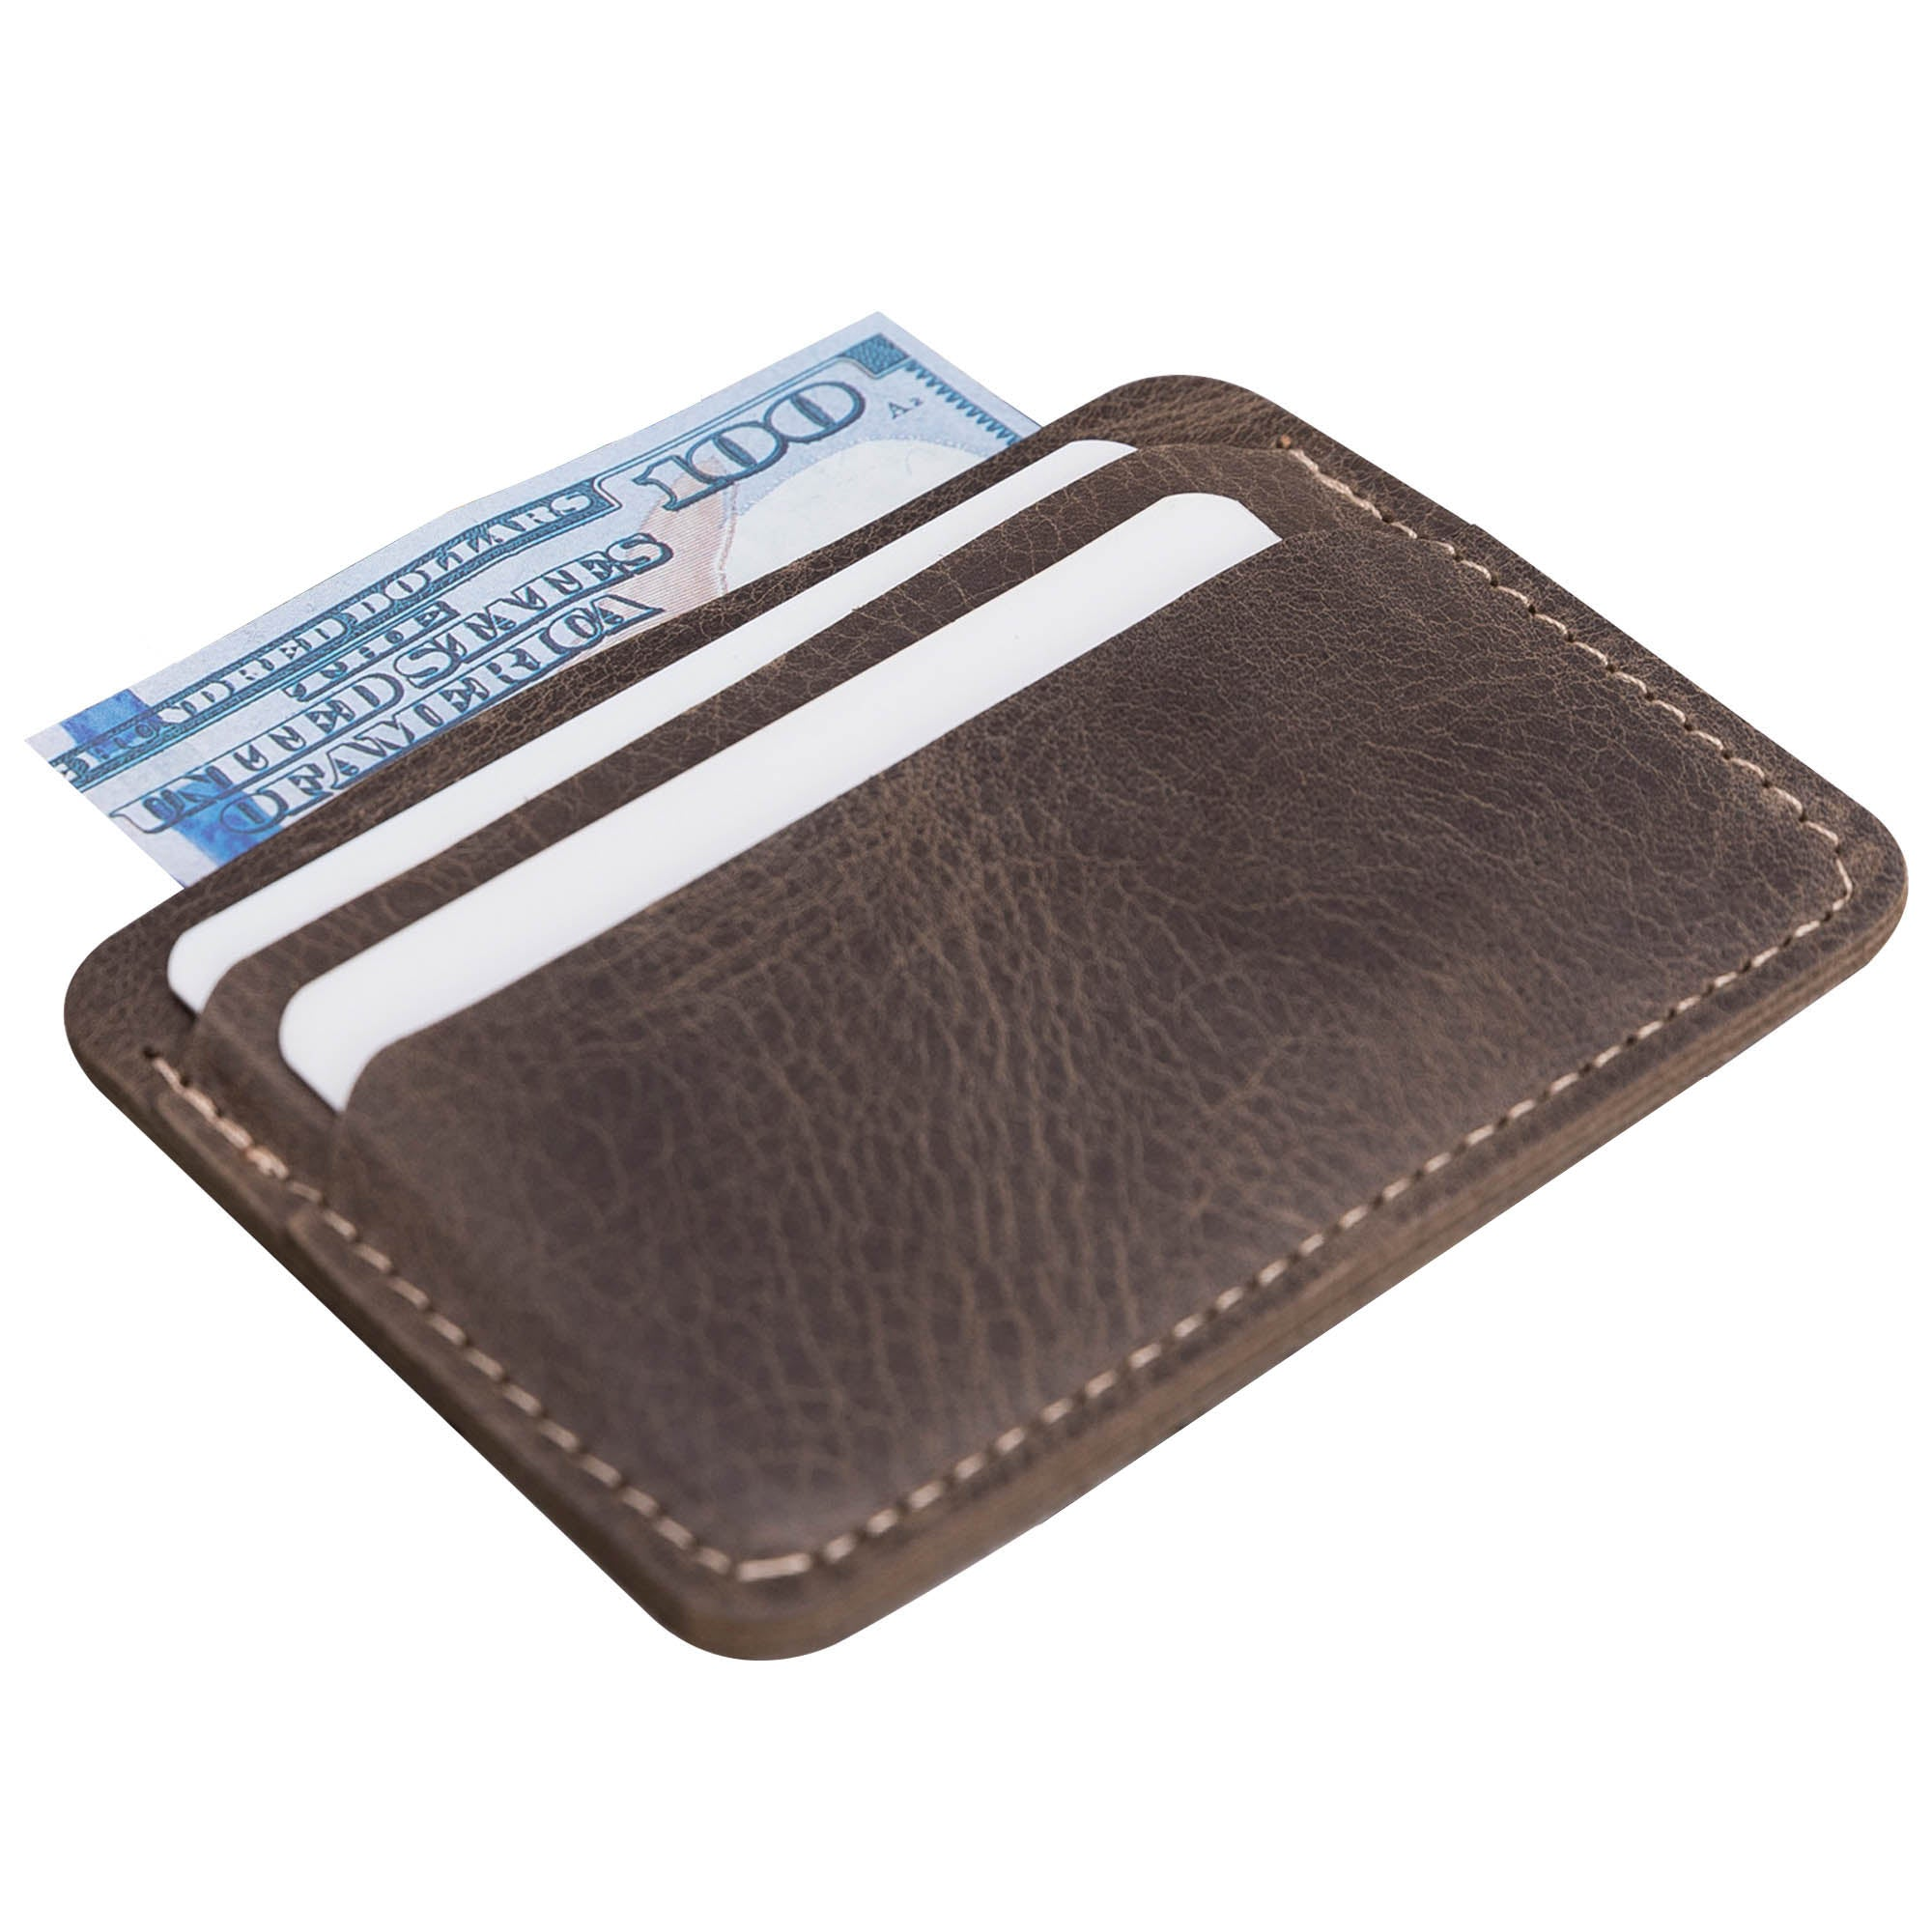 Slim Leather Business Card Holder - BROWN